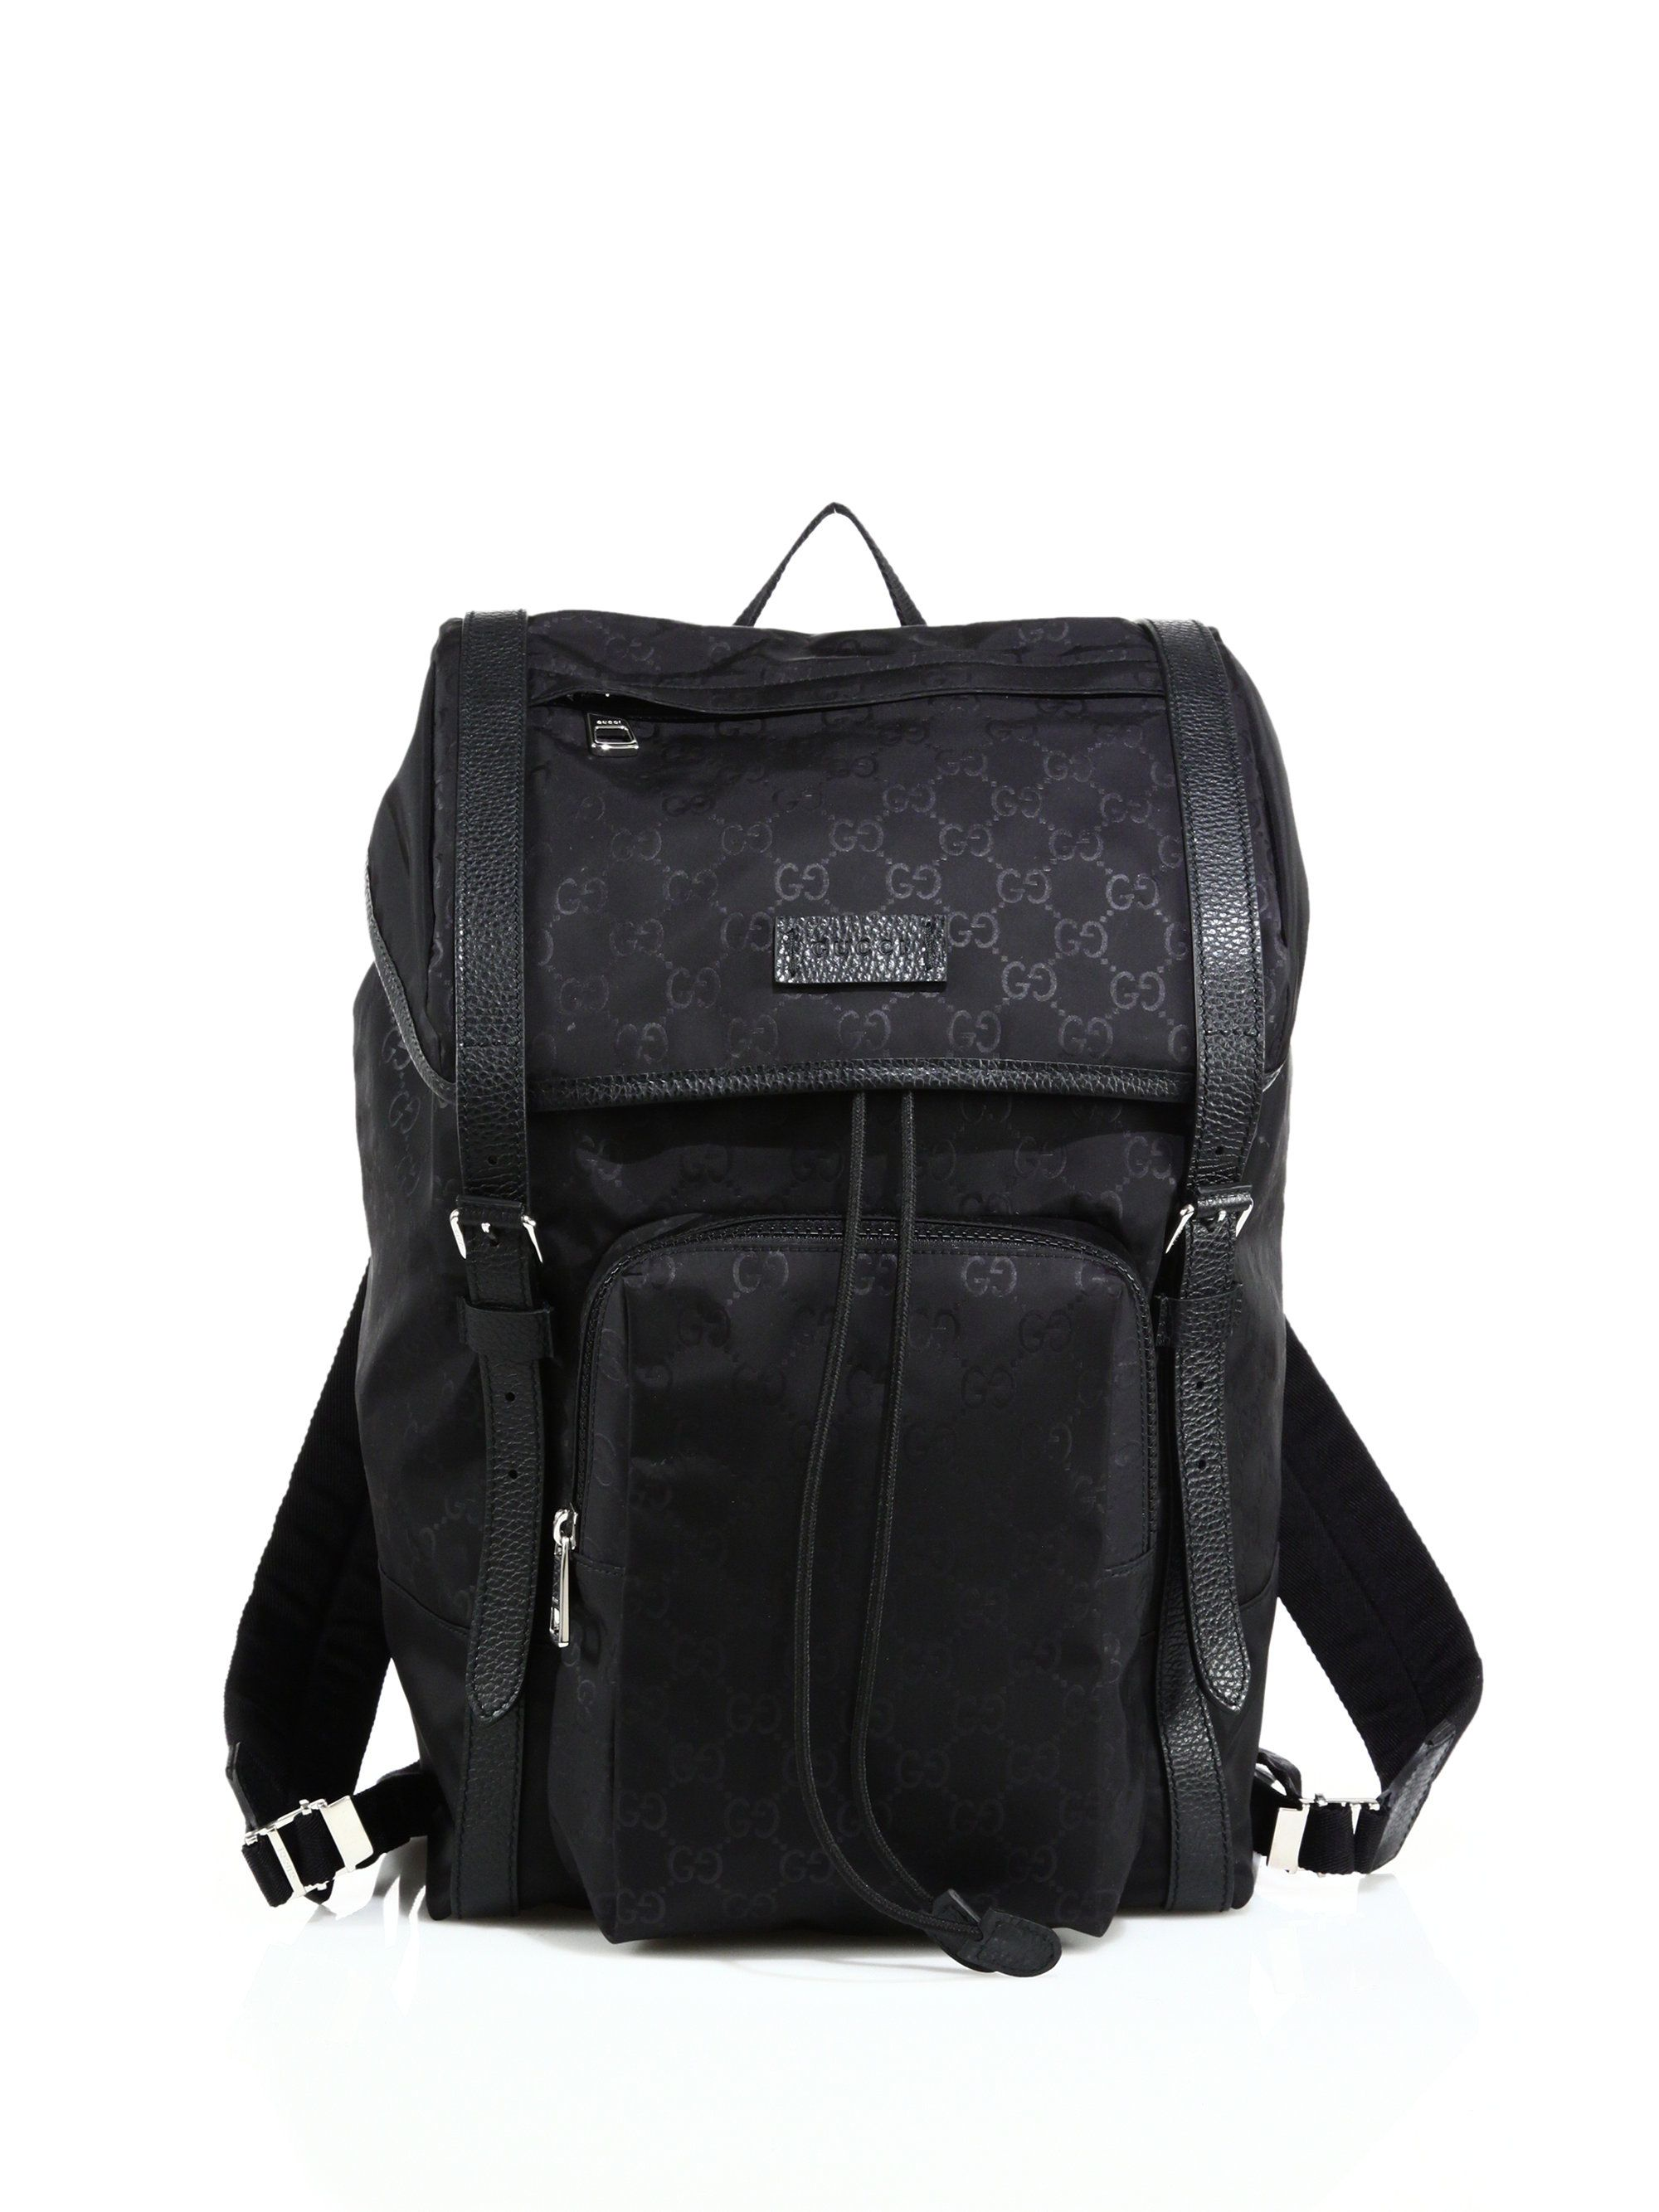 52731927845908 Women's Black Nylon Sima Backpack | Gucci Bag Wear | Bags, Backpacks ...